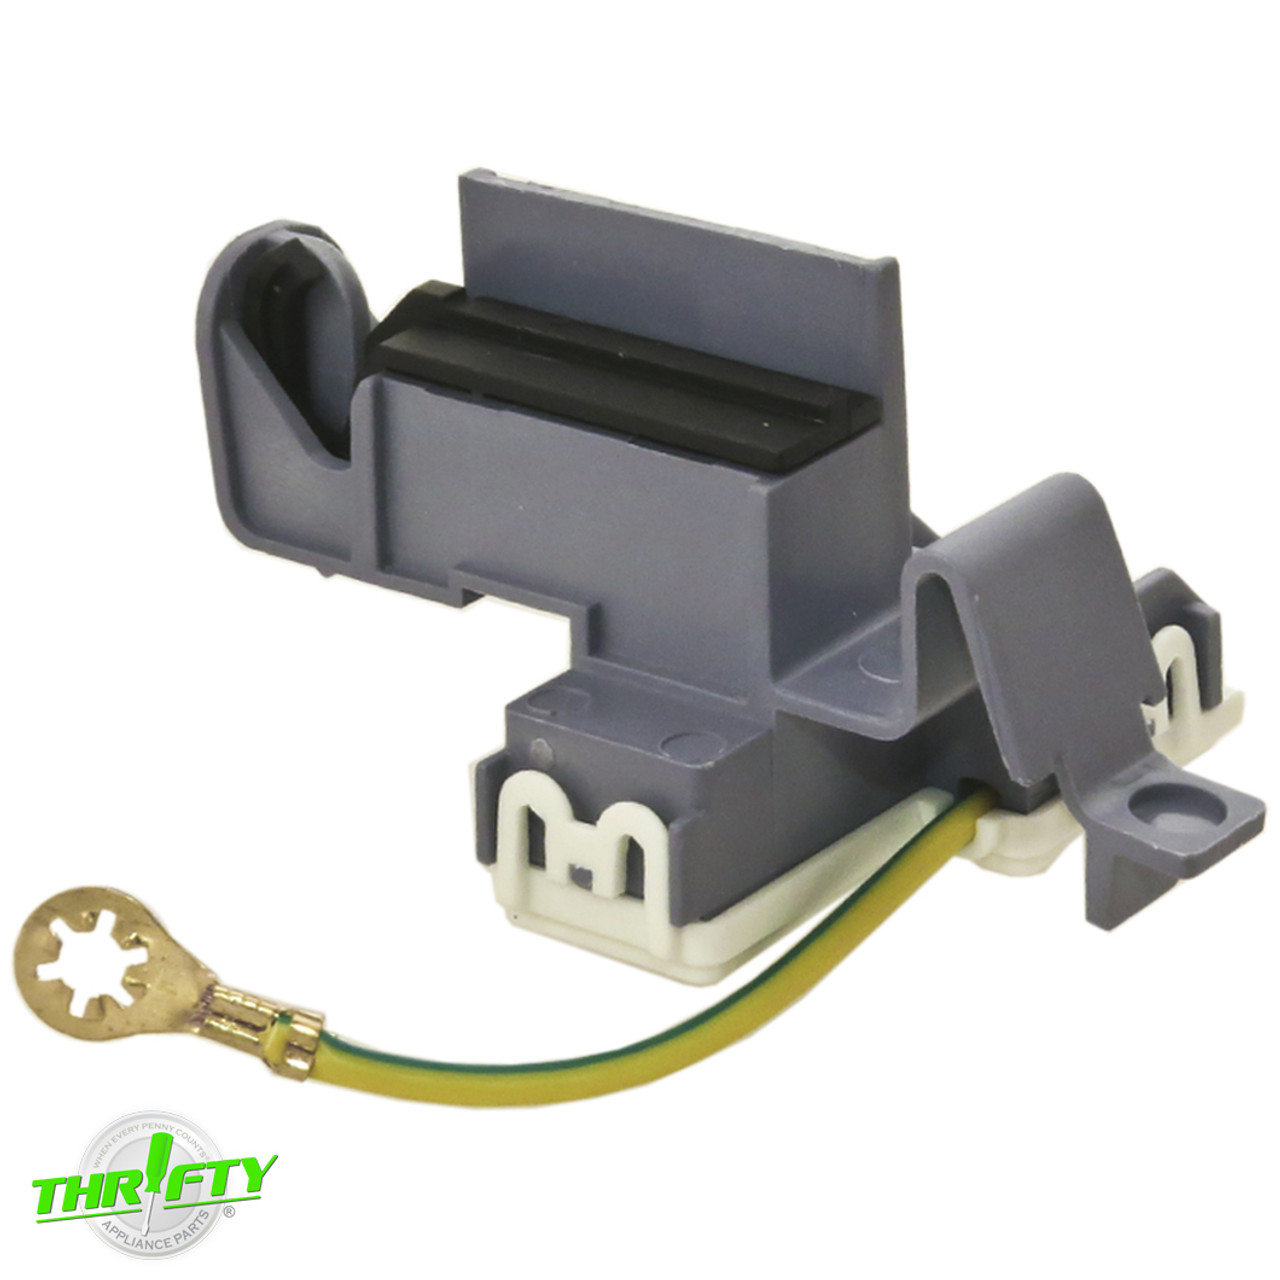 small resolution of 8318084 whirlpool lid switch replacement thrifty appliance parts diagram parts list for model atw4475vq0 admiralparts washerparts